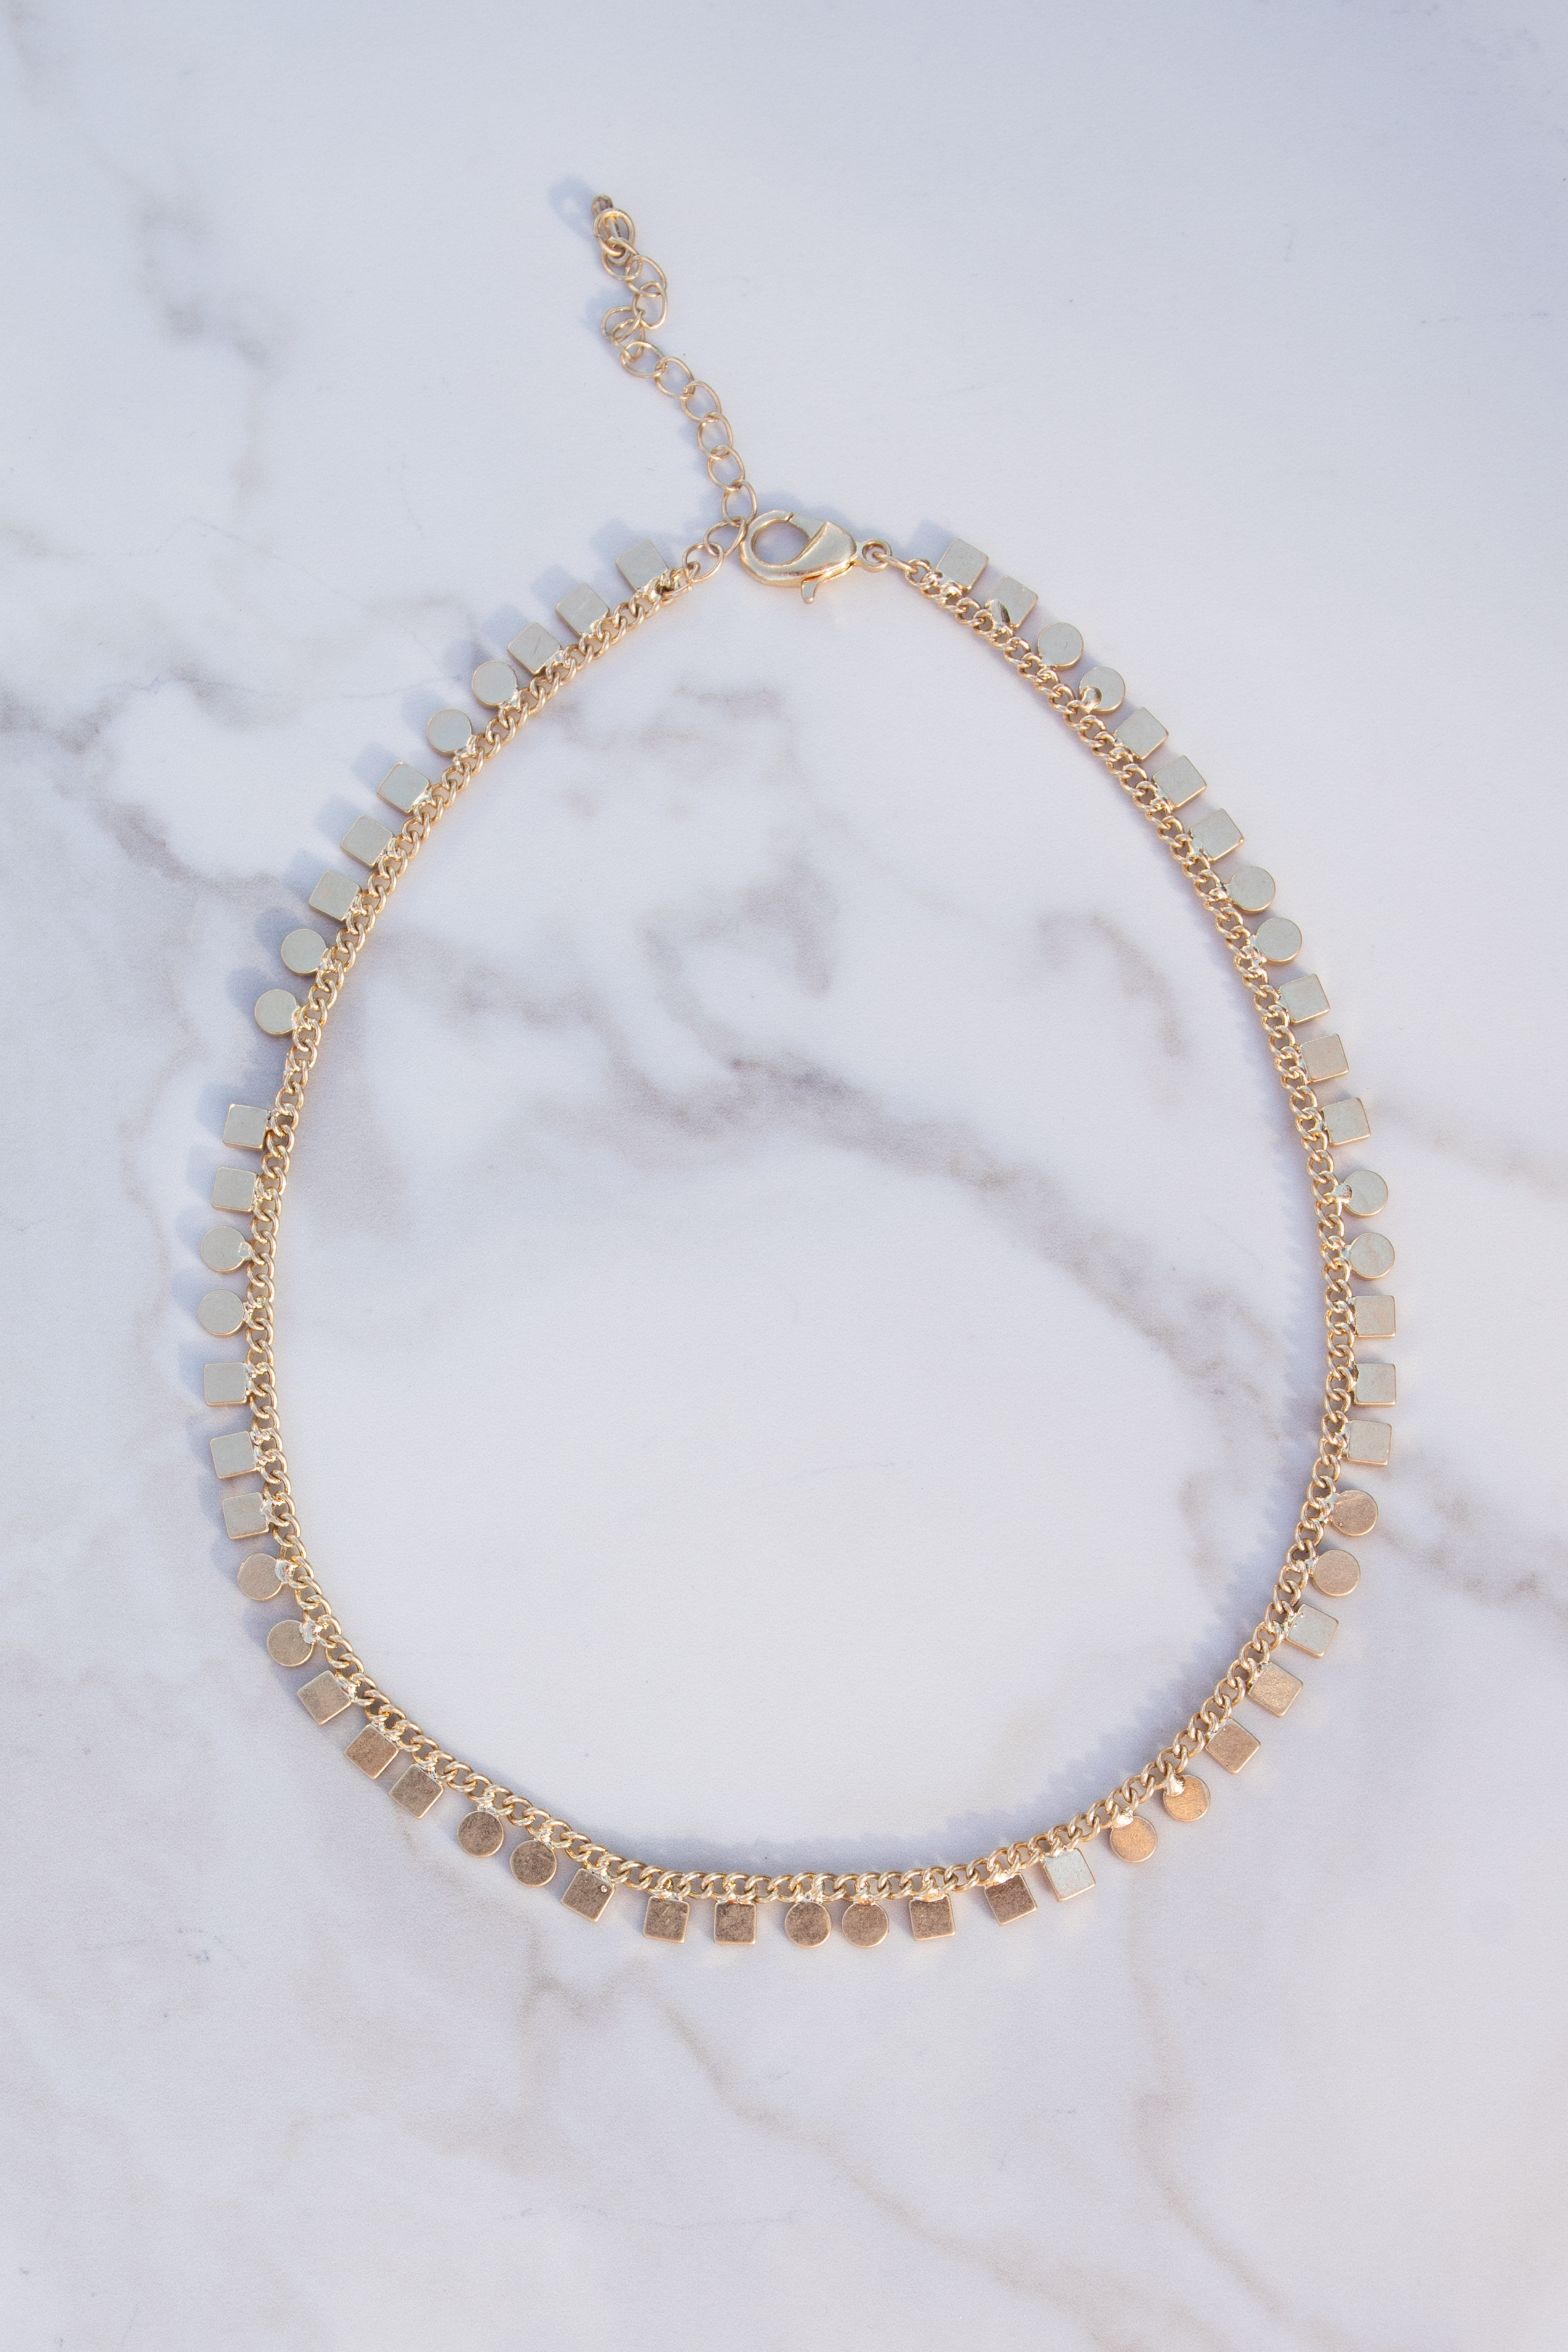 Brushed Gold Choker Necklace with Geometric Charms